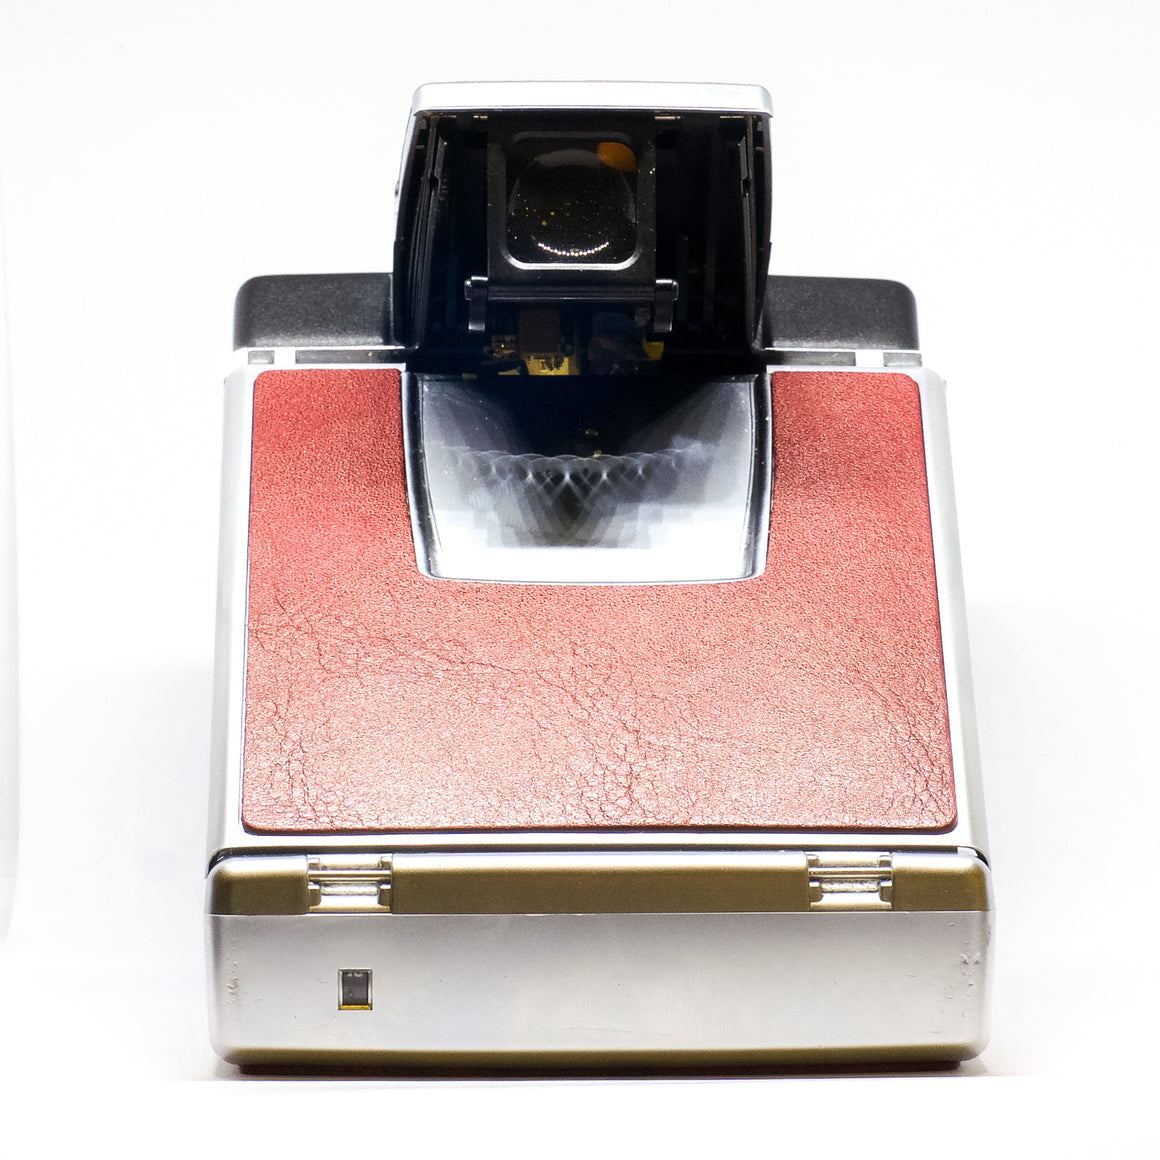 Polaroid Sx-70 Sonar Onestep instant camera with autofocus (Refurbished)